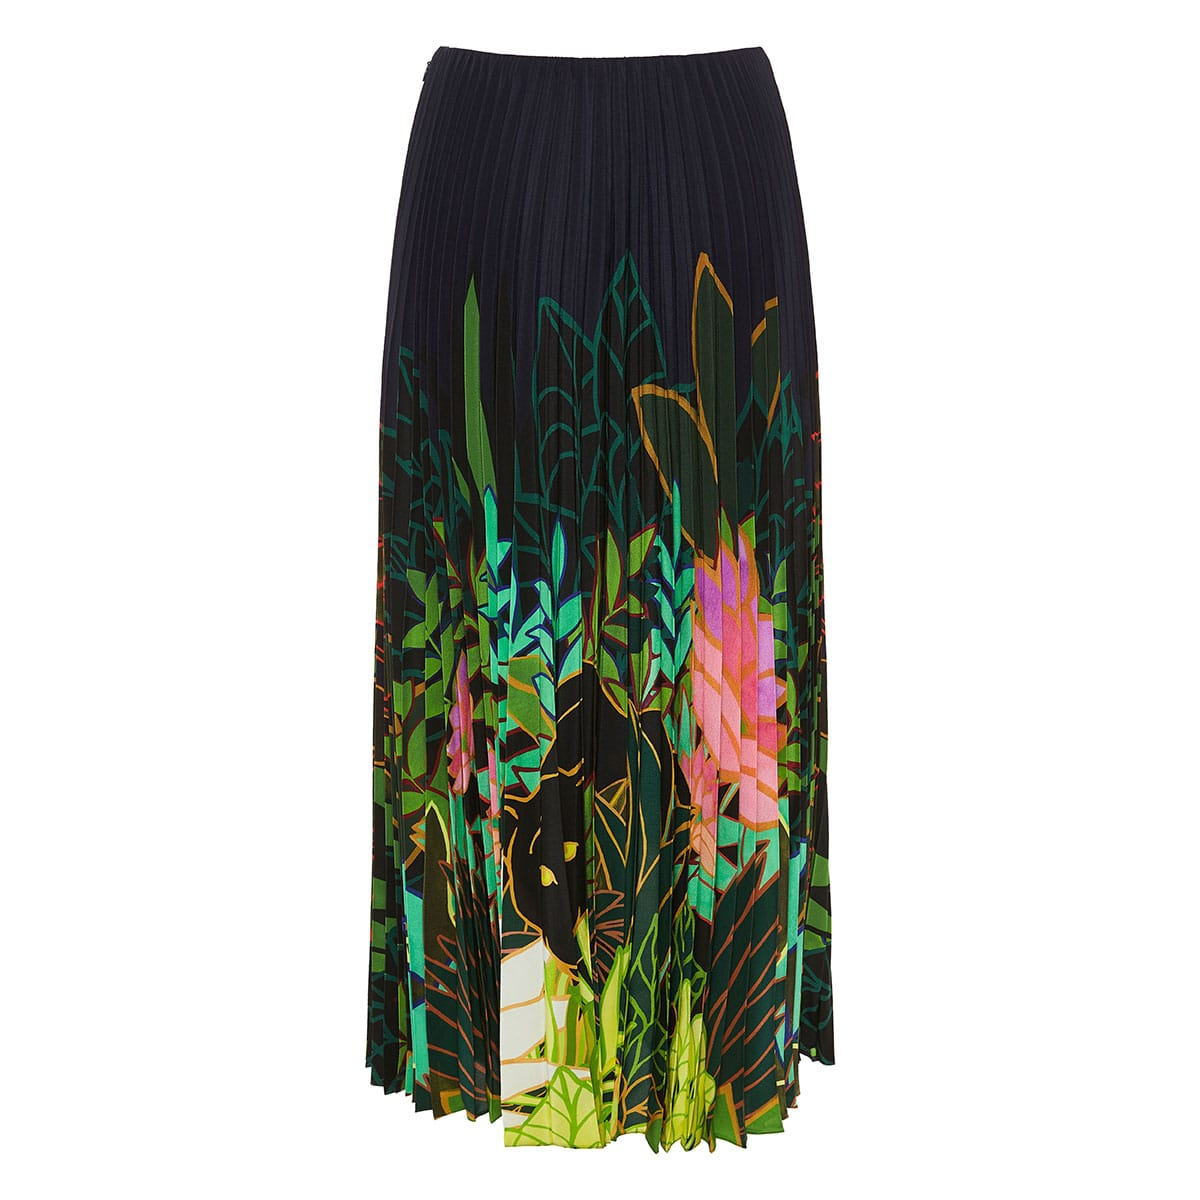 Panther In The Jungle pleated midi skirt